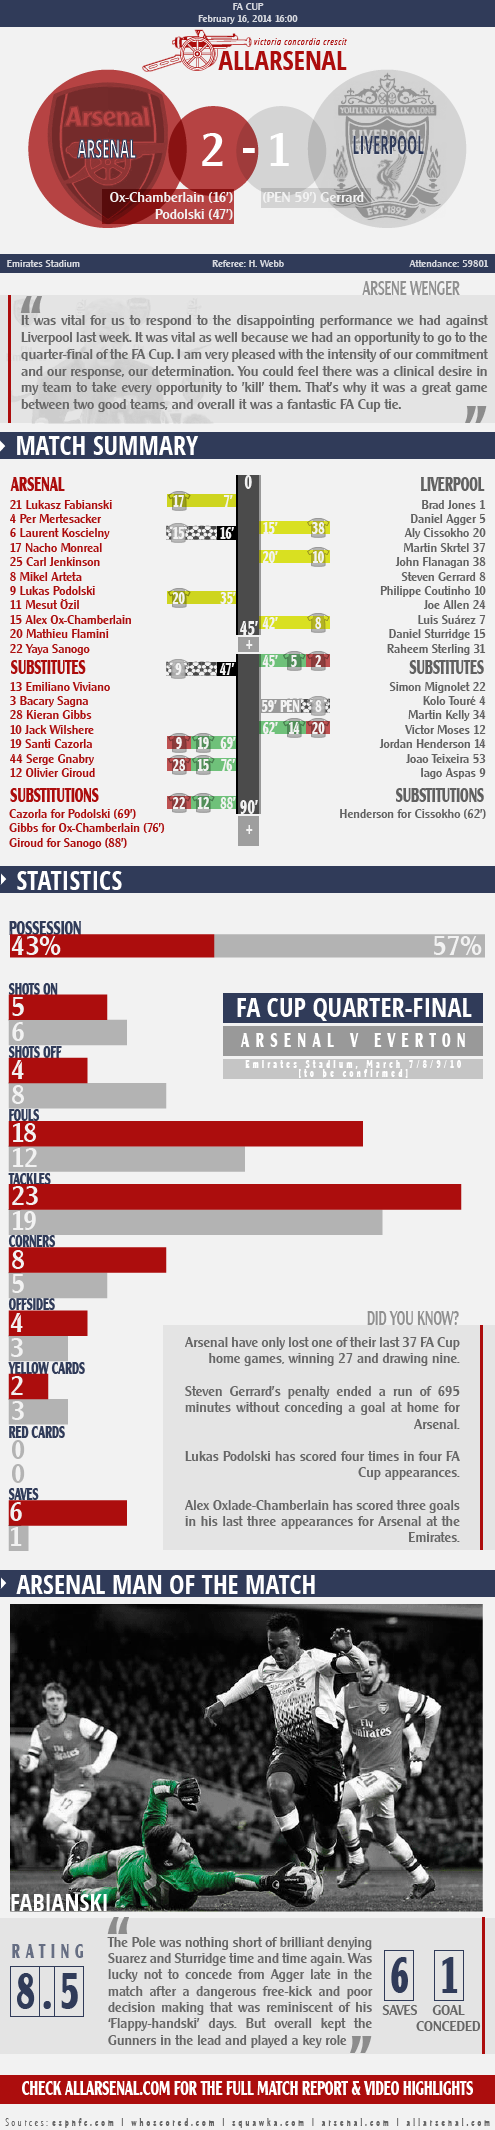 arsenal 2 v 1 liverpool fa cup match report infographic-01